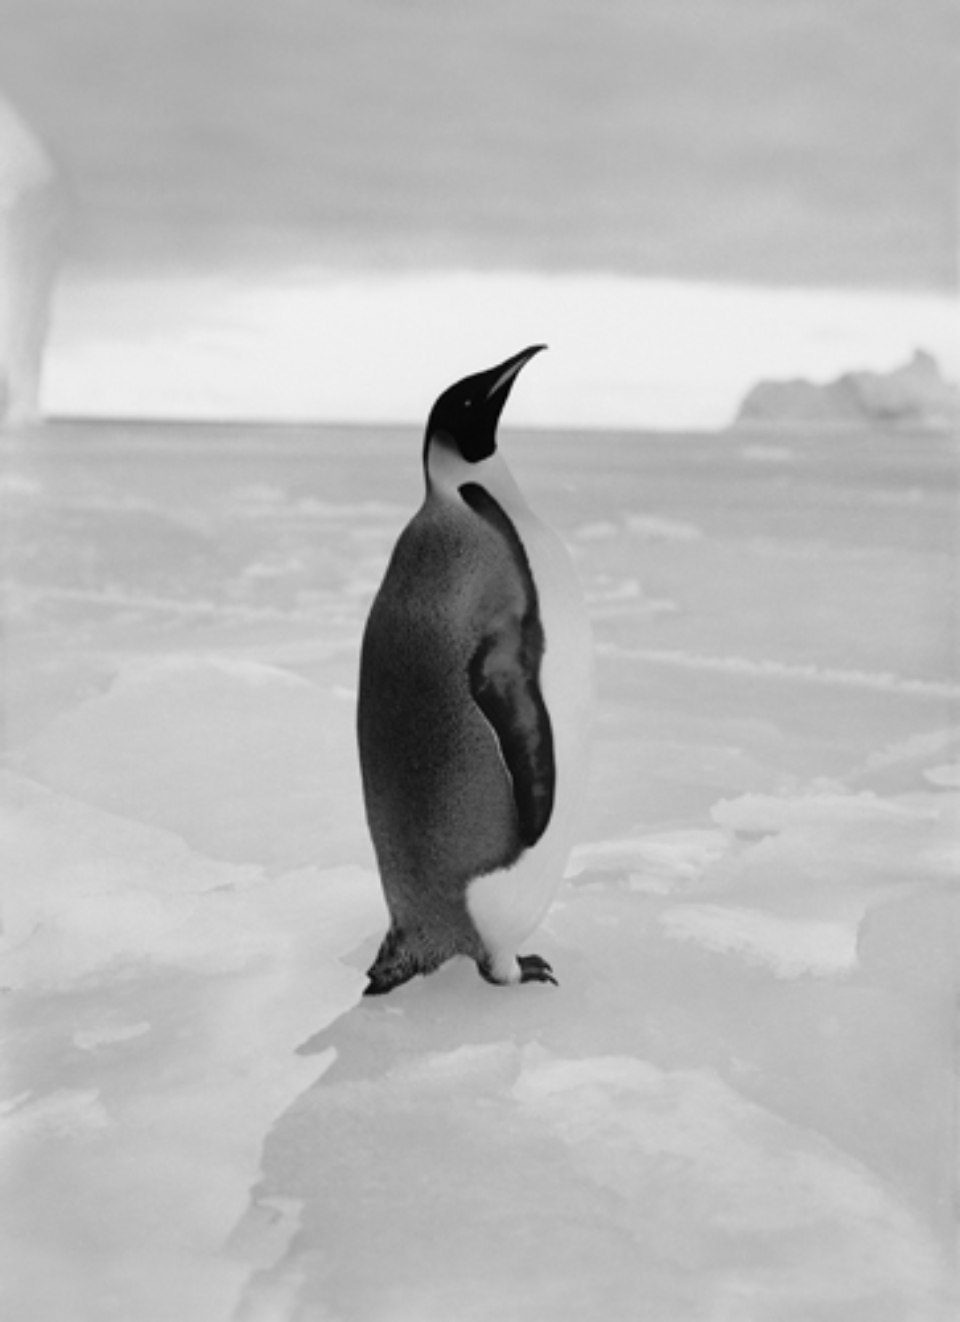 Herbert G. Ponting: An Emperor Penguin Embossed on recto, numbered on verso Modern Platinum palladium print Two different sizes available Ed. of 20